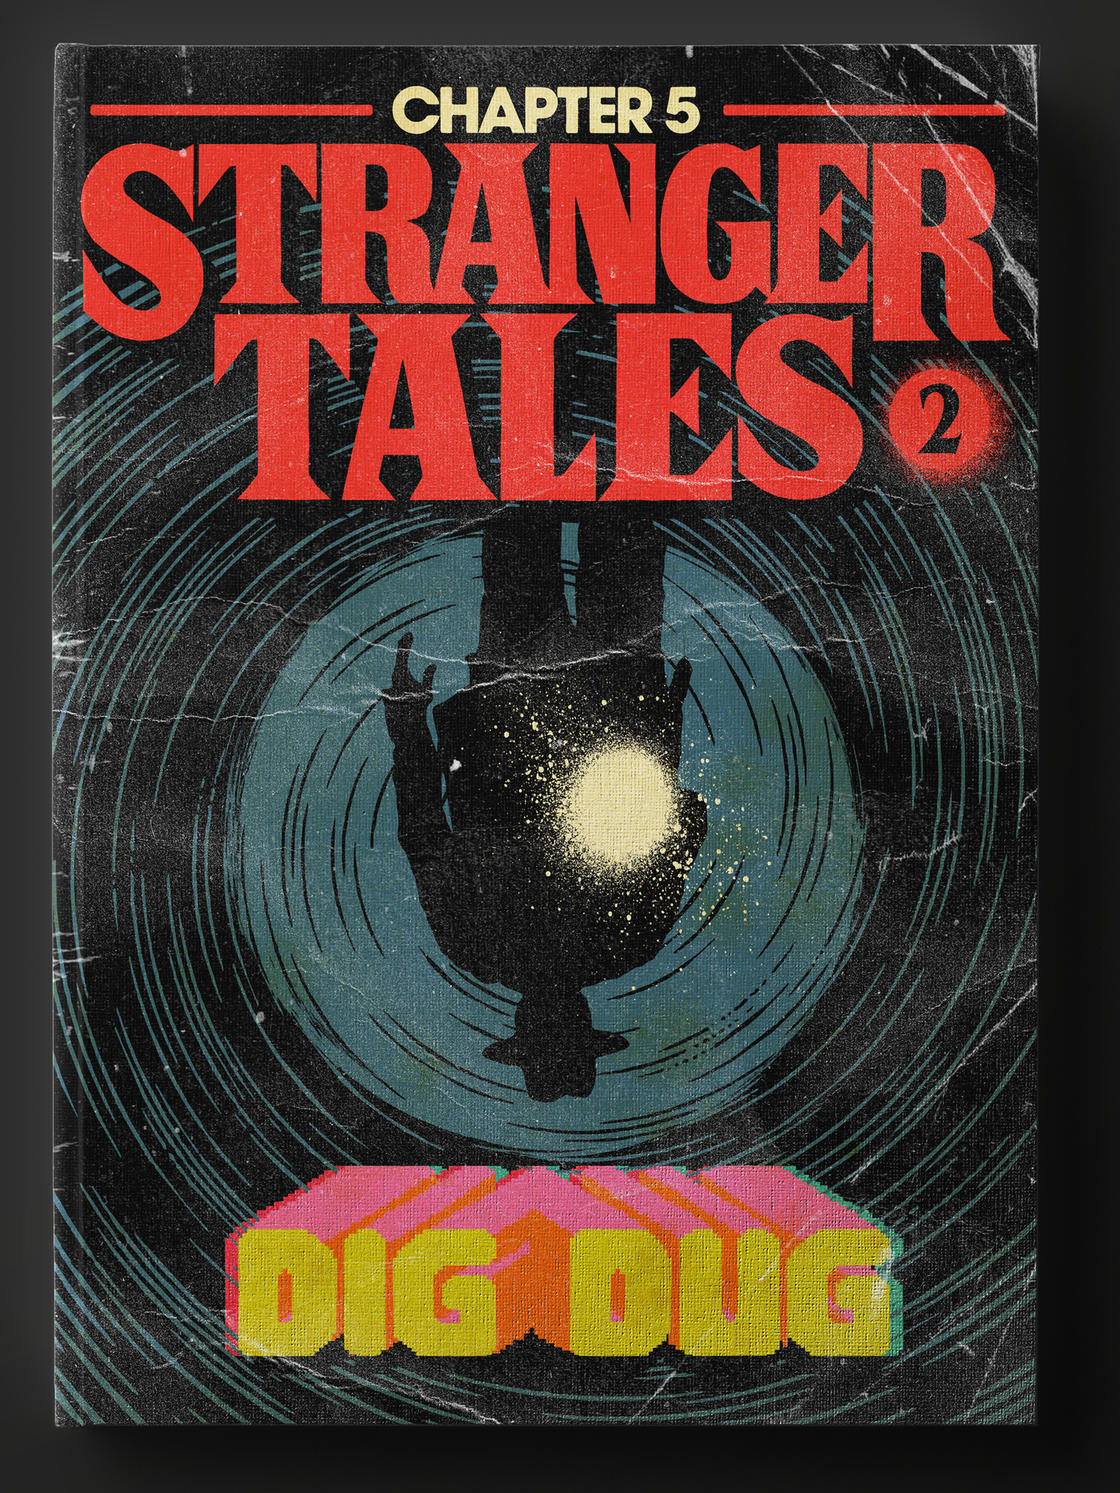 Stranger Tales – The episodes of Stranger Things as horror books from the 80s